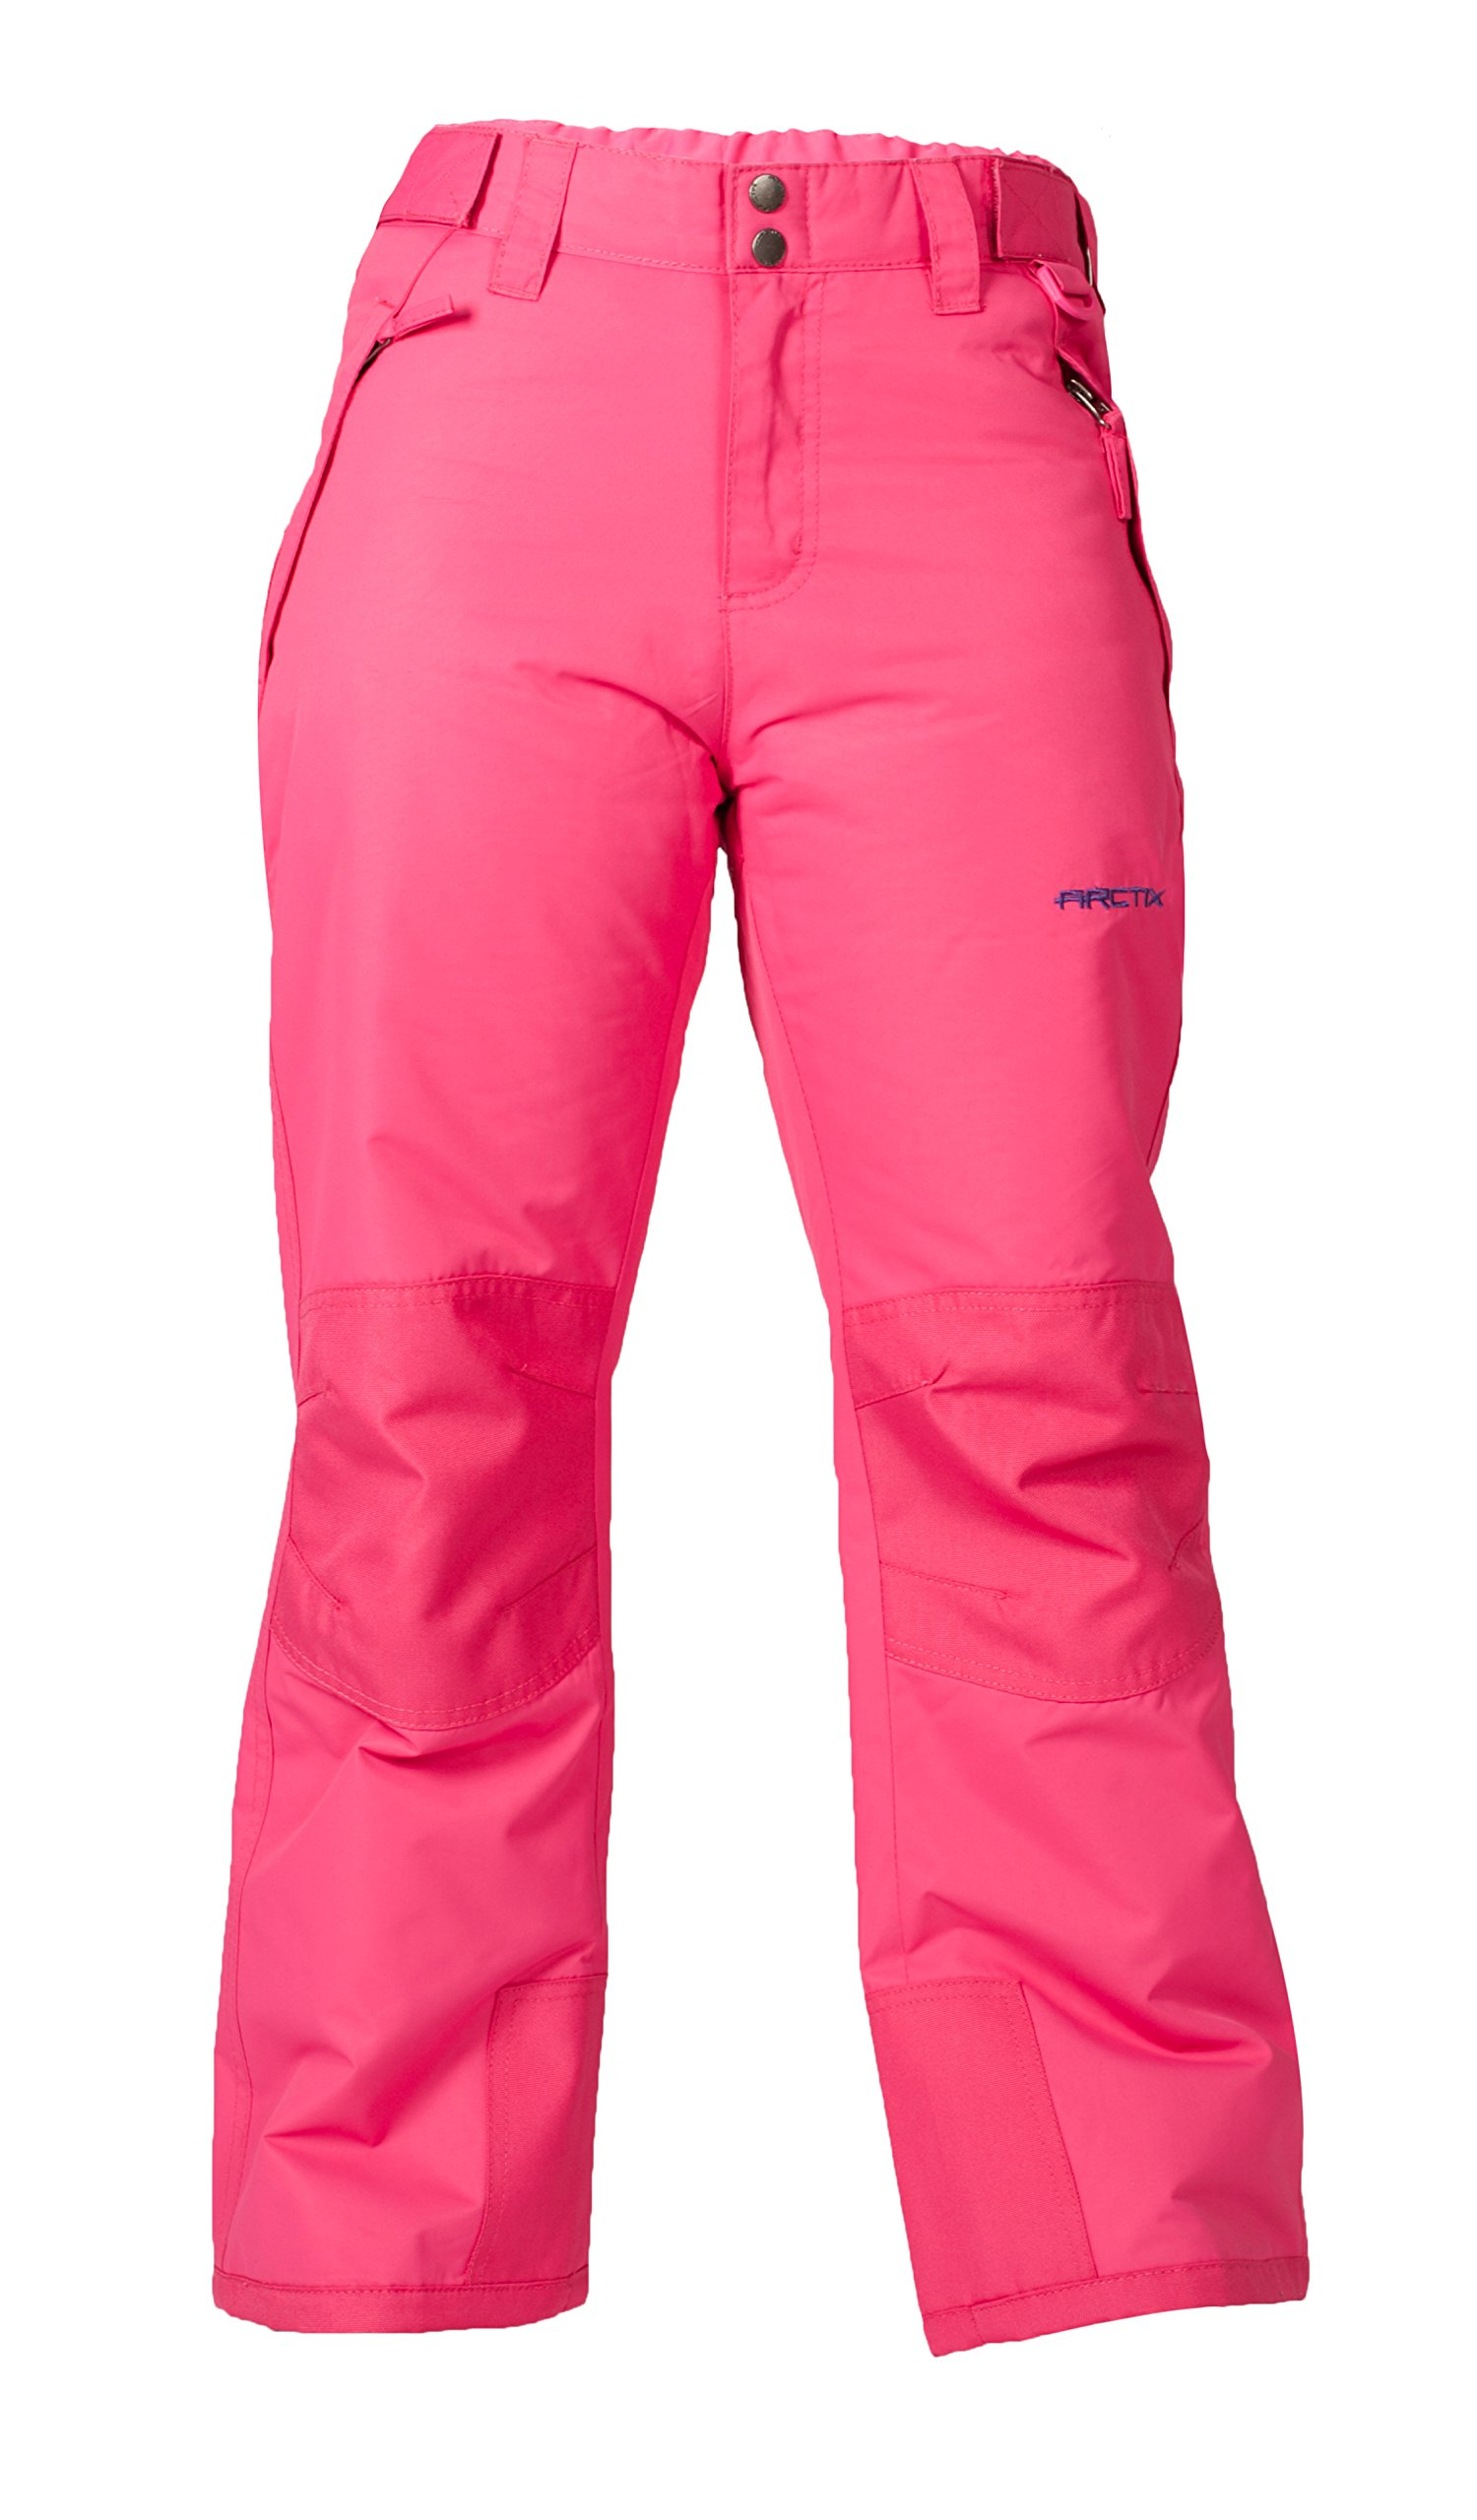 Arctix Youth Snow Pants with Reinforced Knees and Seat, Fuchsia, X-Small